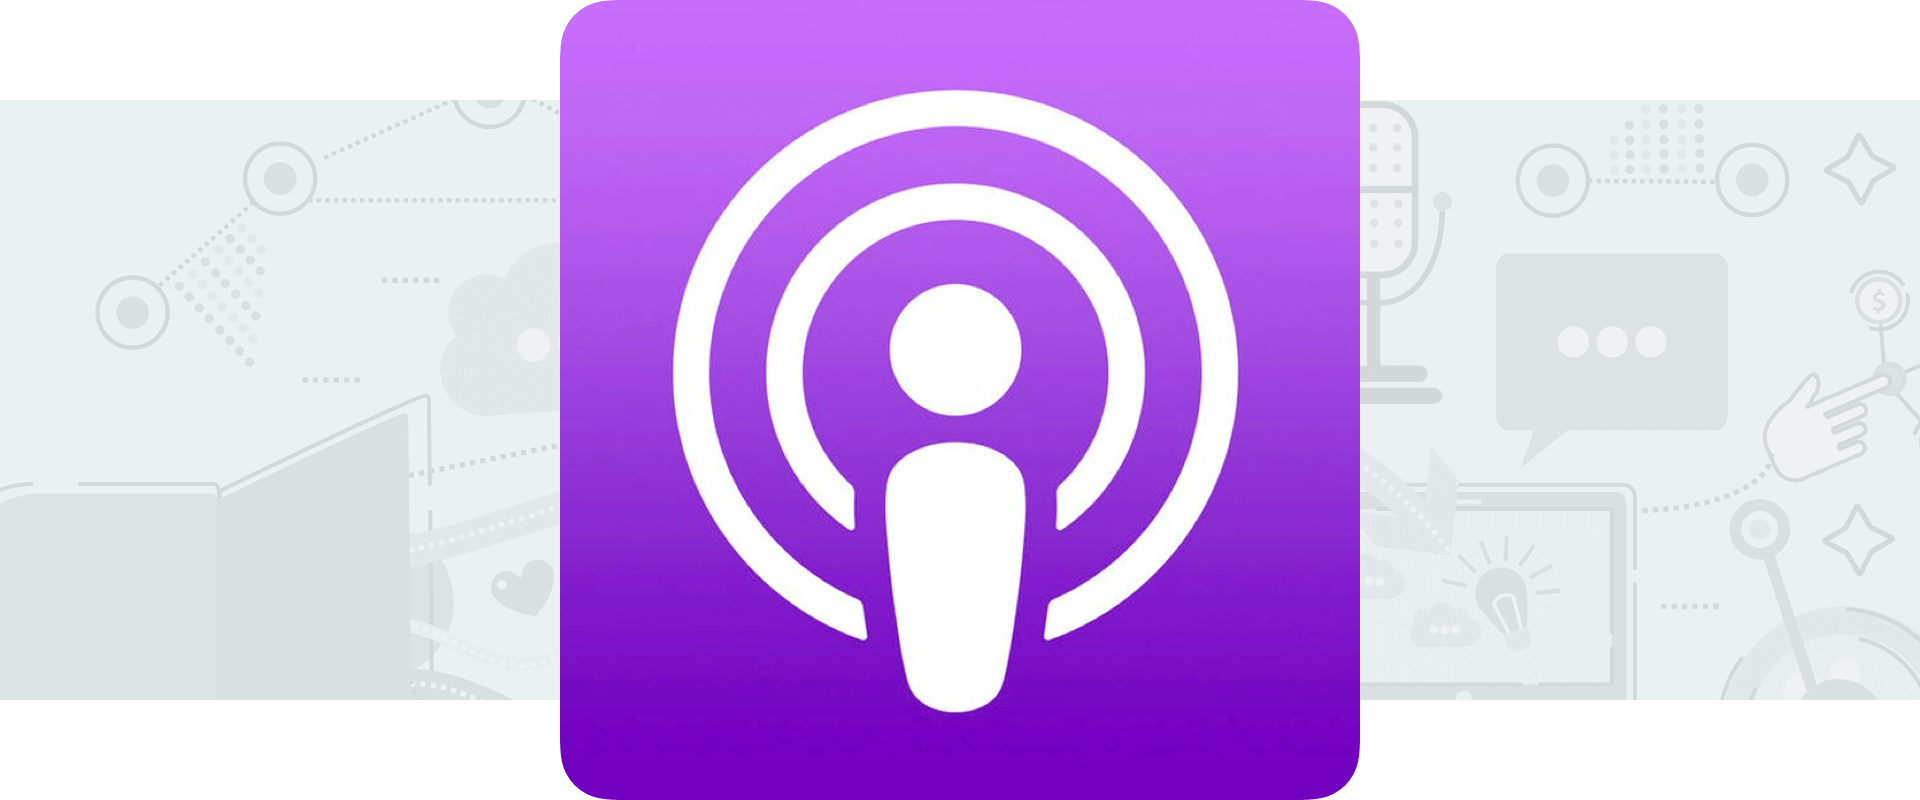 Apple Podcasts logo on light gray background